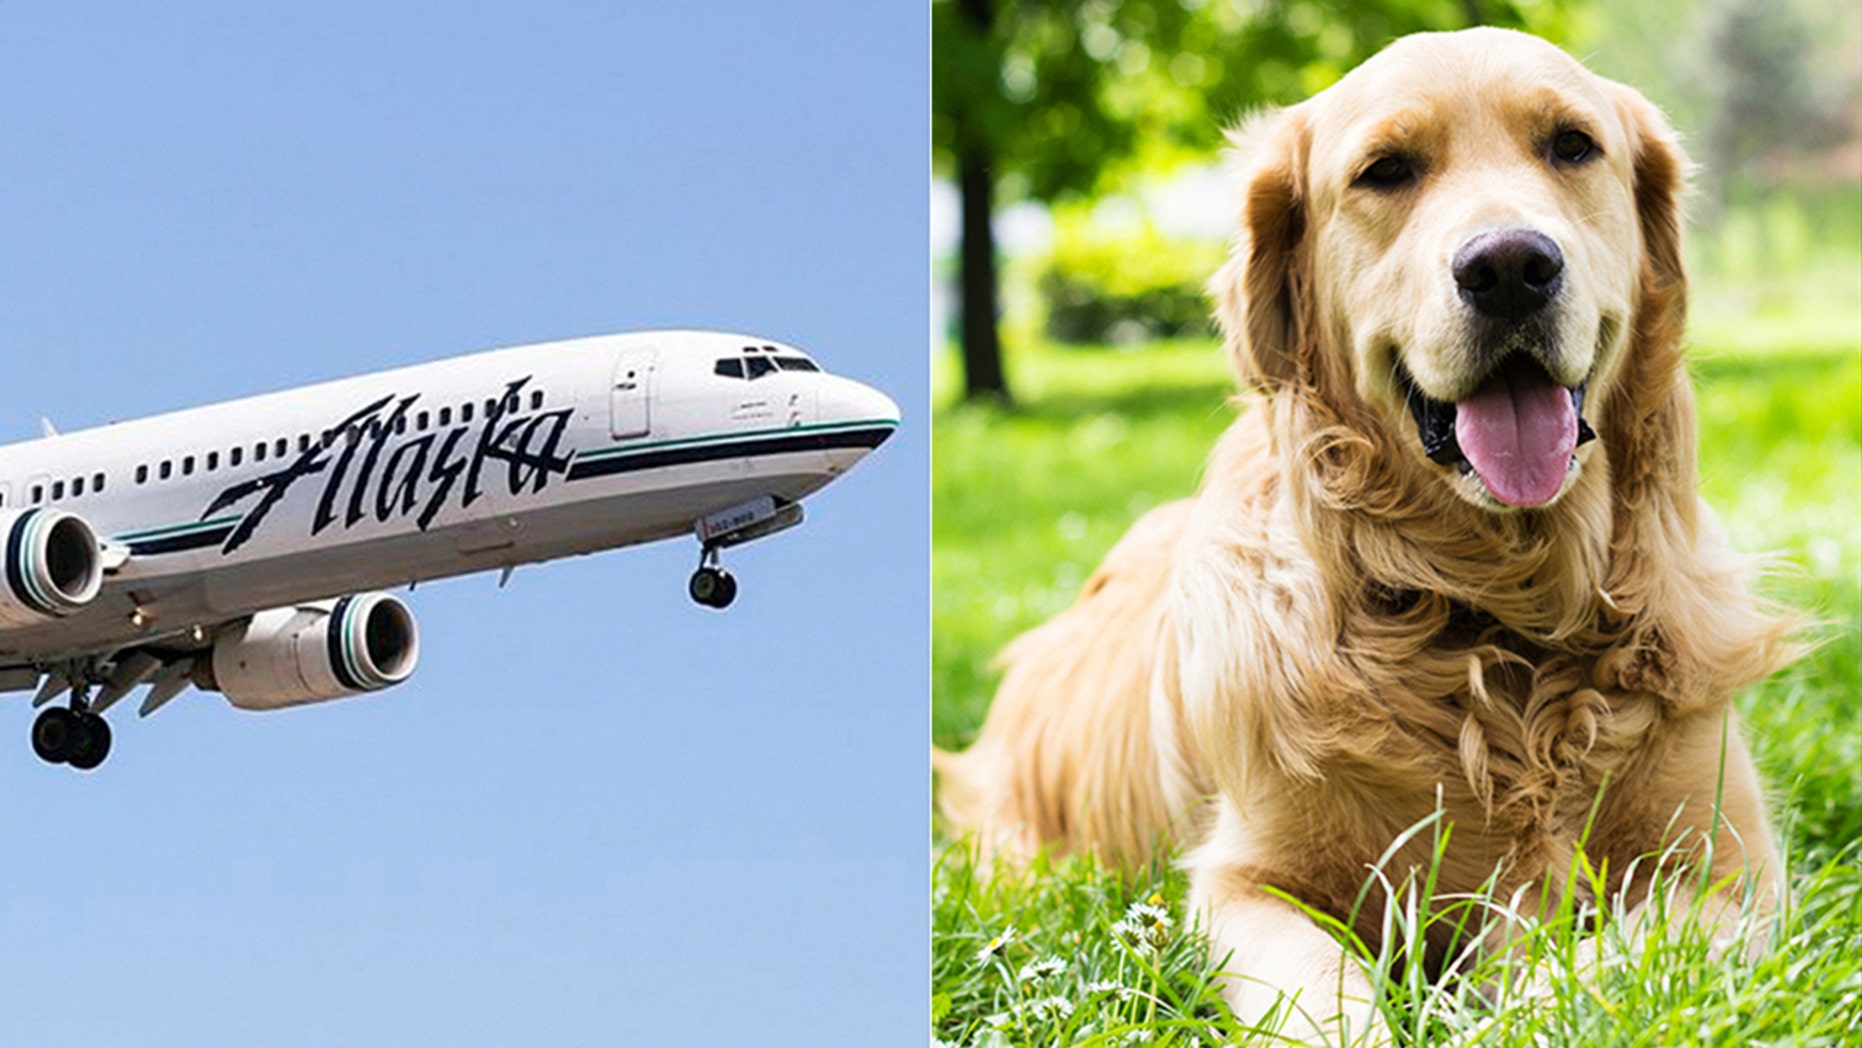 The SeaTac headquartered carrier has rolled out new rules for those traveling with emotional support animals.